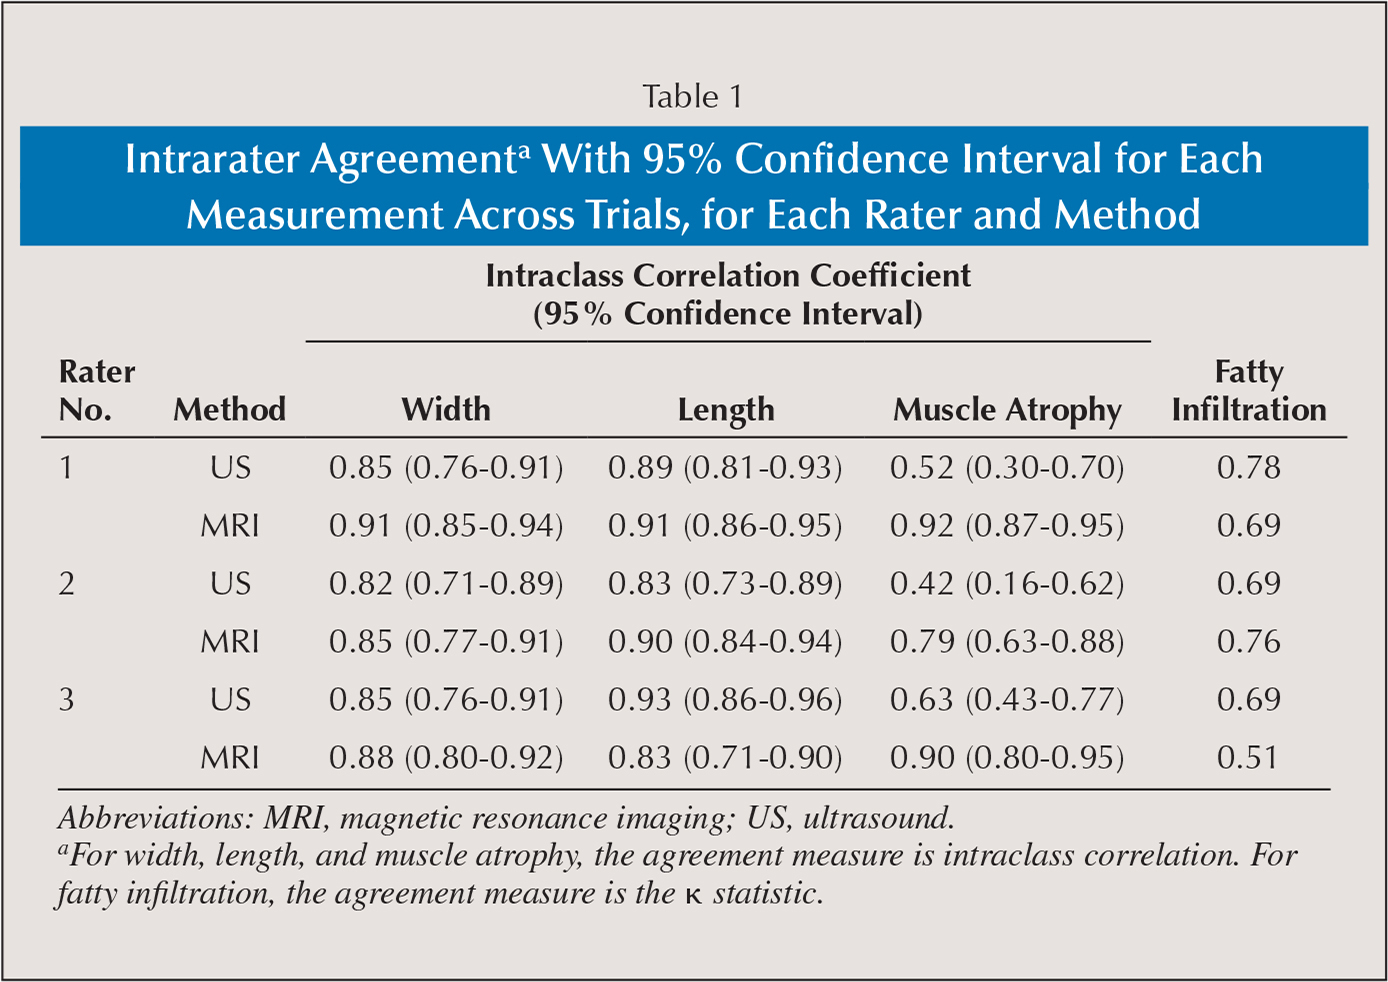 Characterization of rotator cuff tears ultrasound versus for Z table 99 confidence